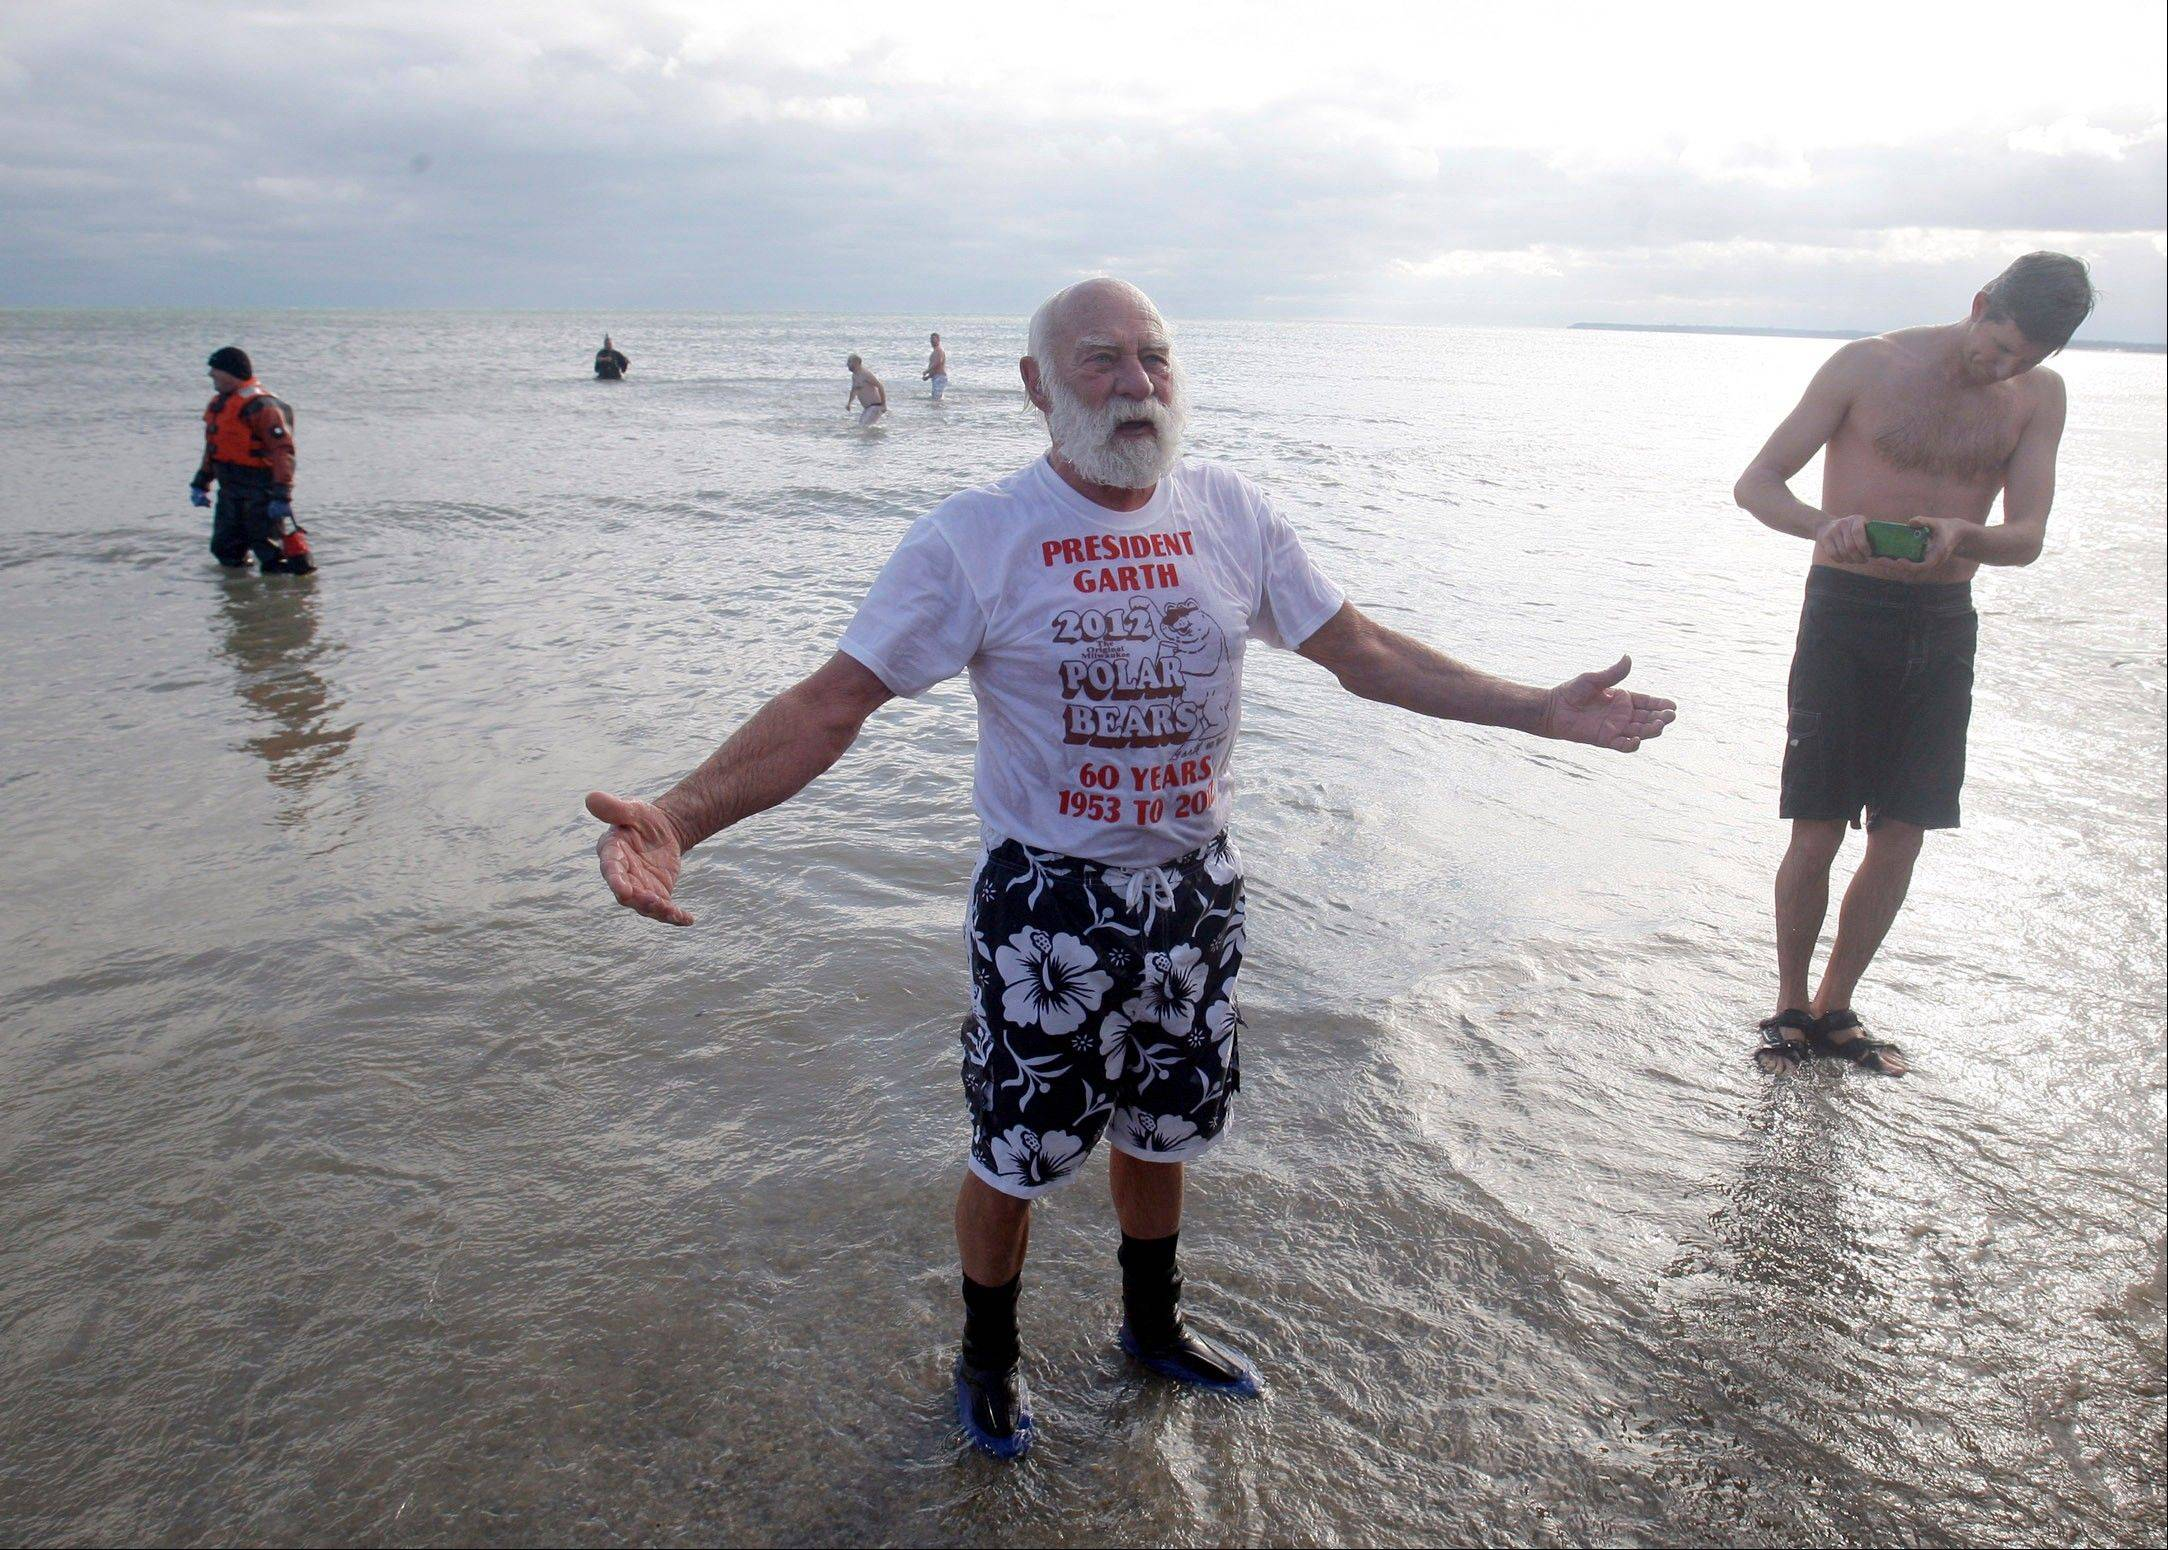 Garth Gaskey, 82 of Brookfield, Wis., emerges after taking a cold swim in Lake Michigan during the annual New Year's Day Polar Dip at Bradford Beach, Wis.